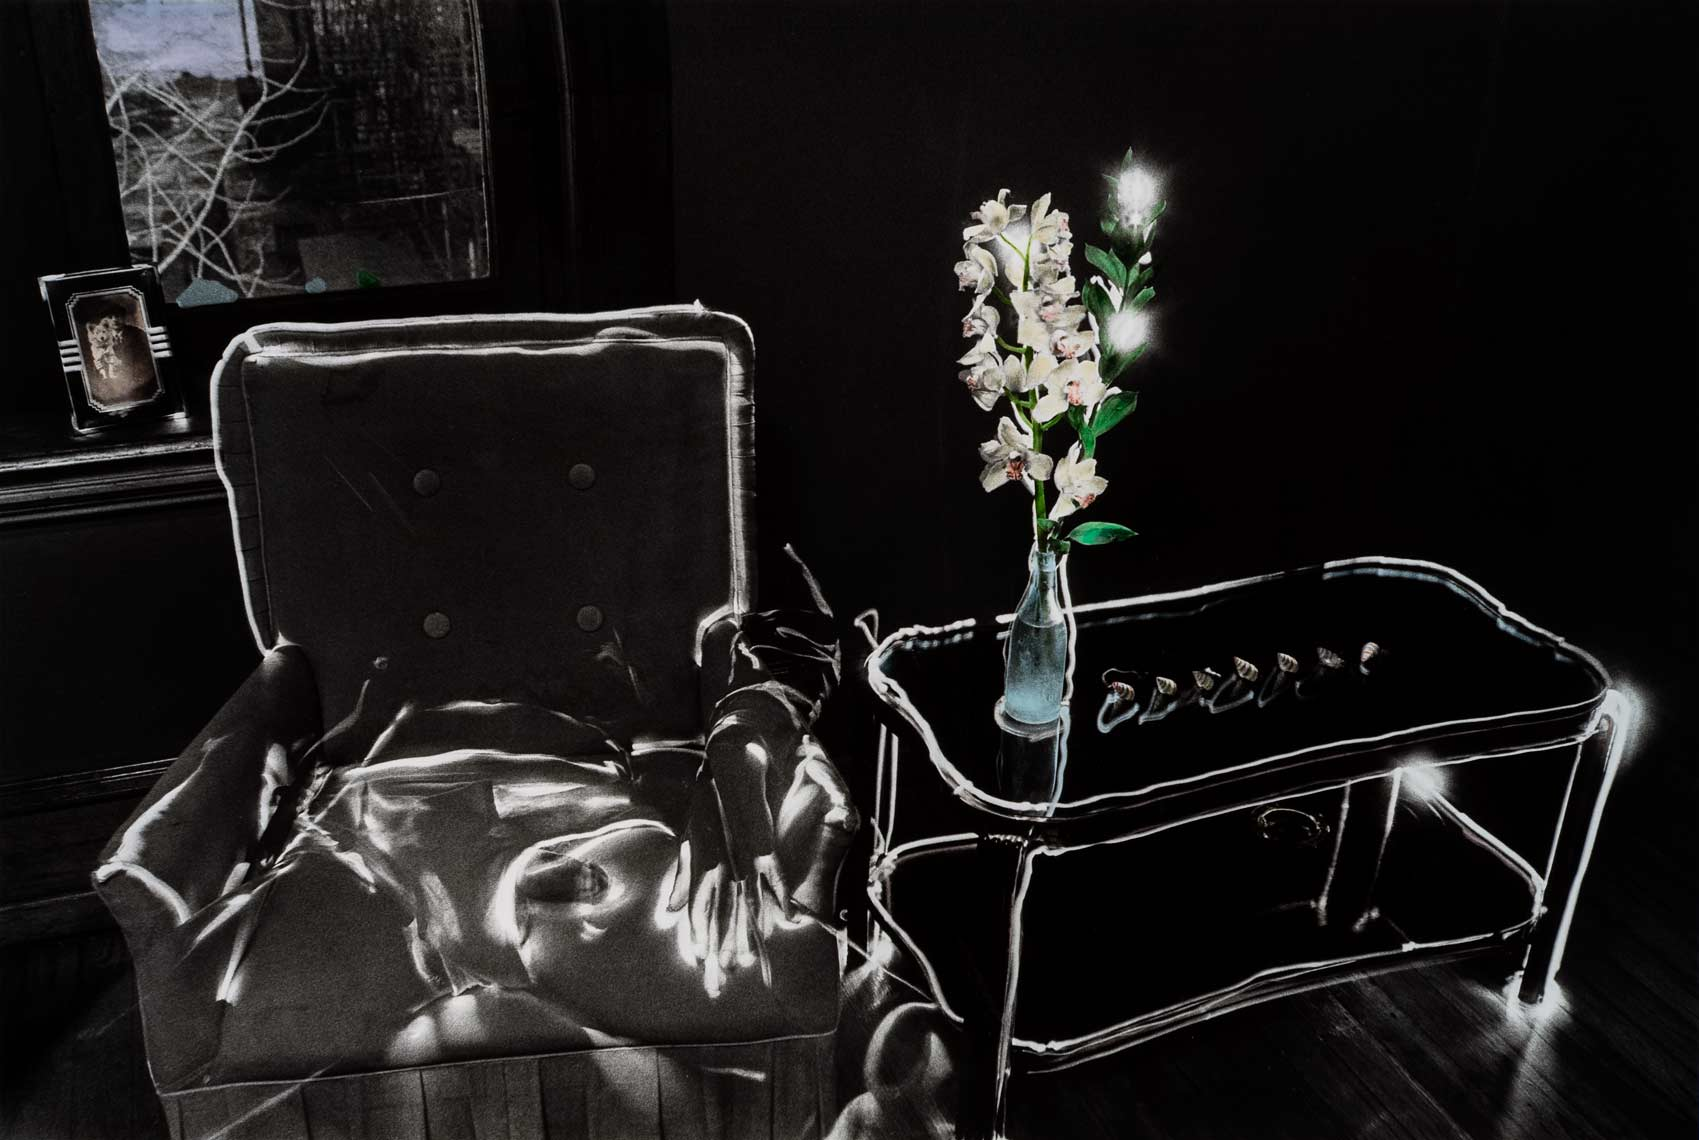 David Lebe; Self Portrait with Orchid 1982, male nude, light drawing, hand colored photograph